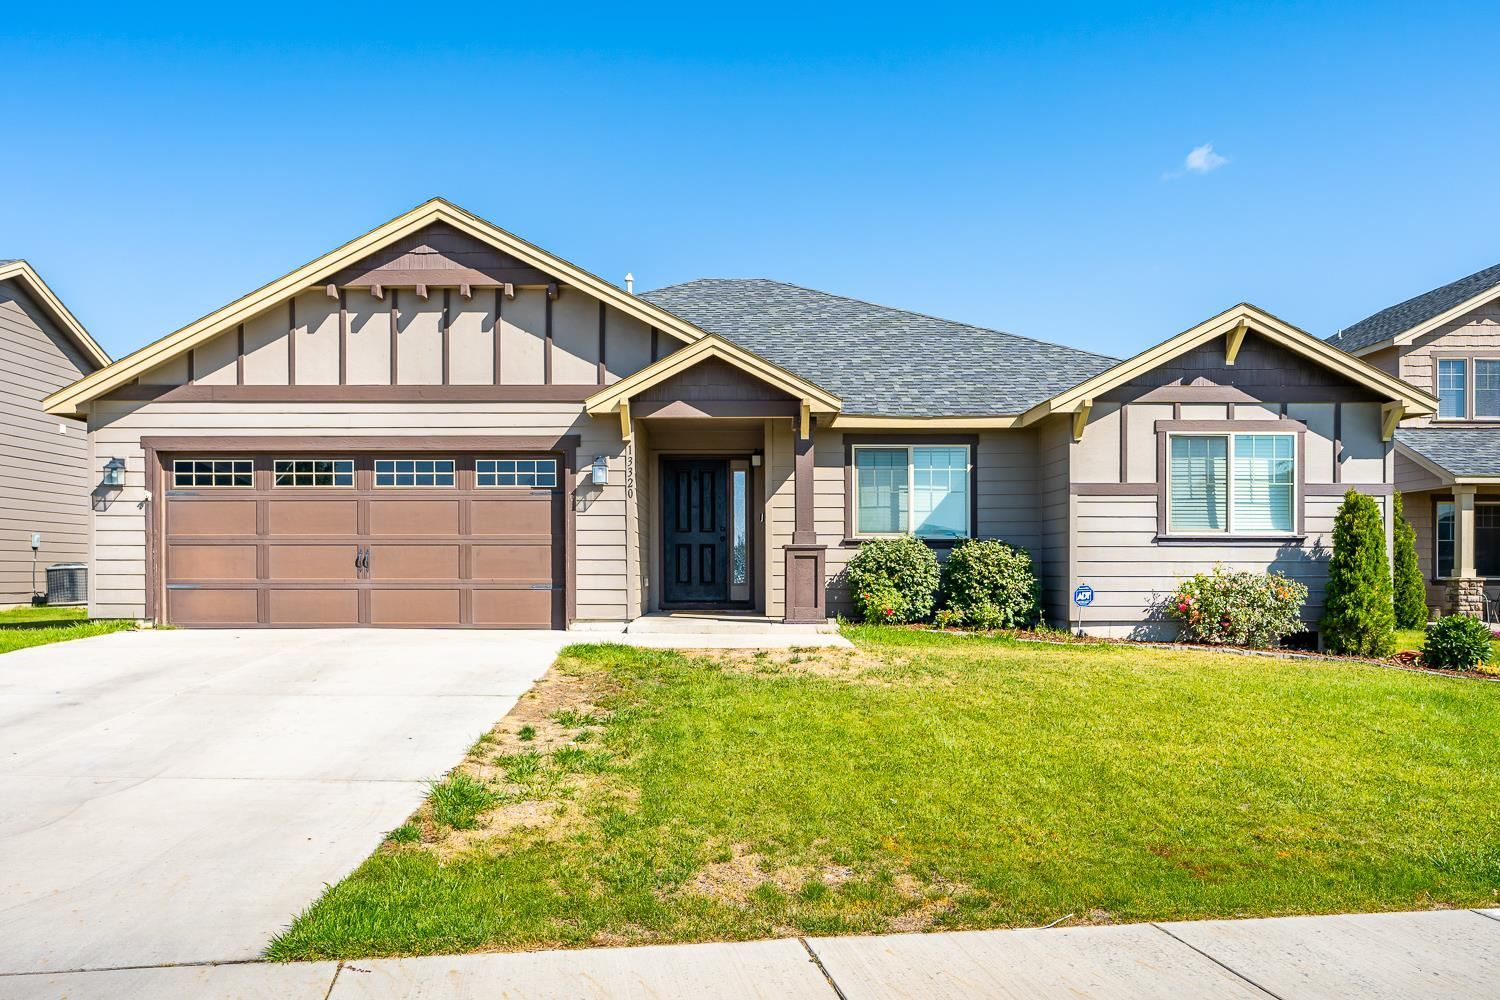 13320 W Pacific Ave, Airway Heights, WA 99001 - #: 202123988